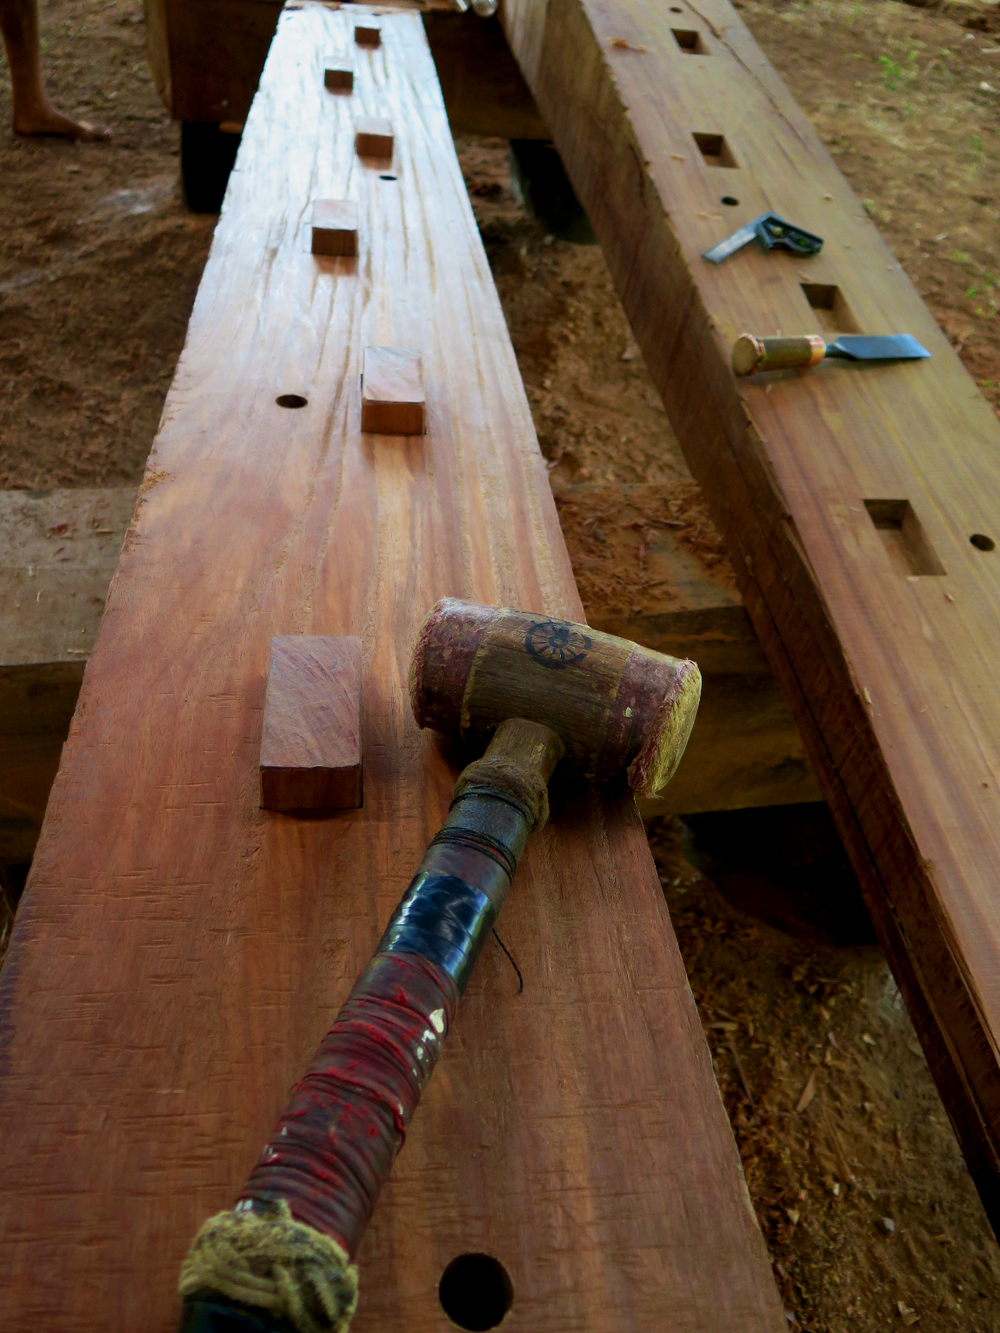 Keel coaxes in dry-fit.